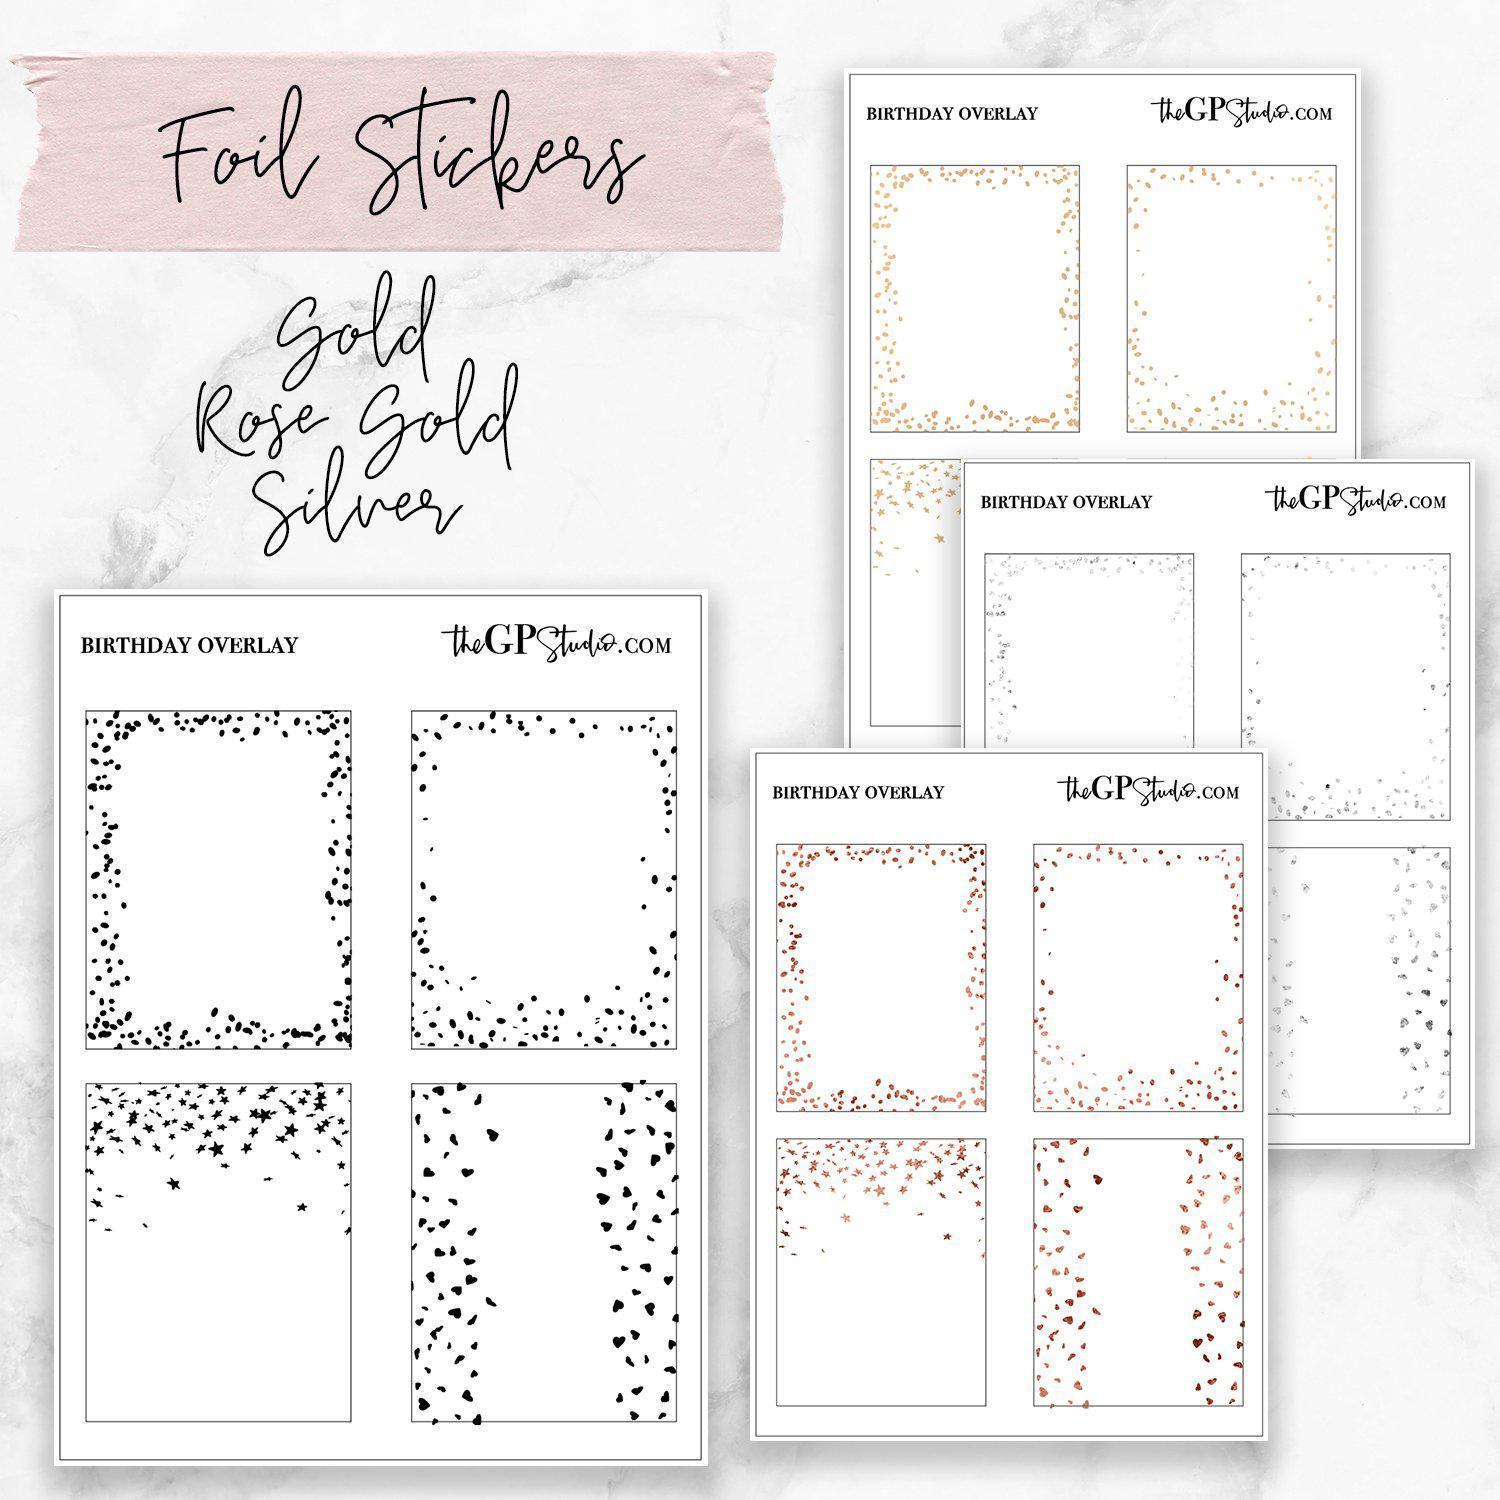 CONFETTI Clear Foil Overlay Full Boxes-The GP Studio